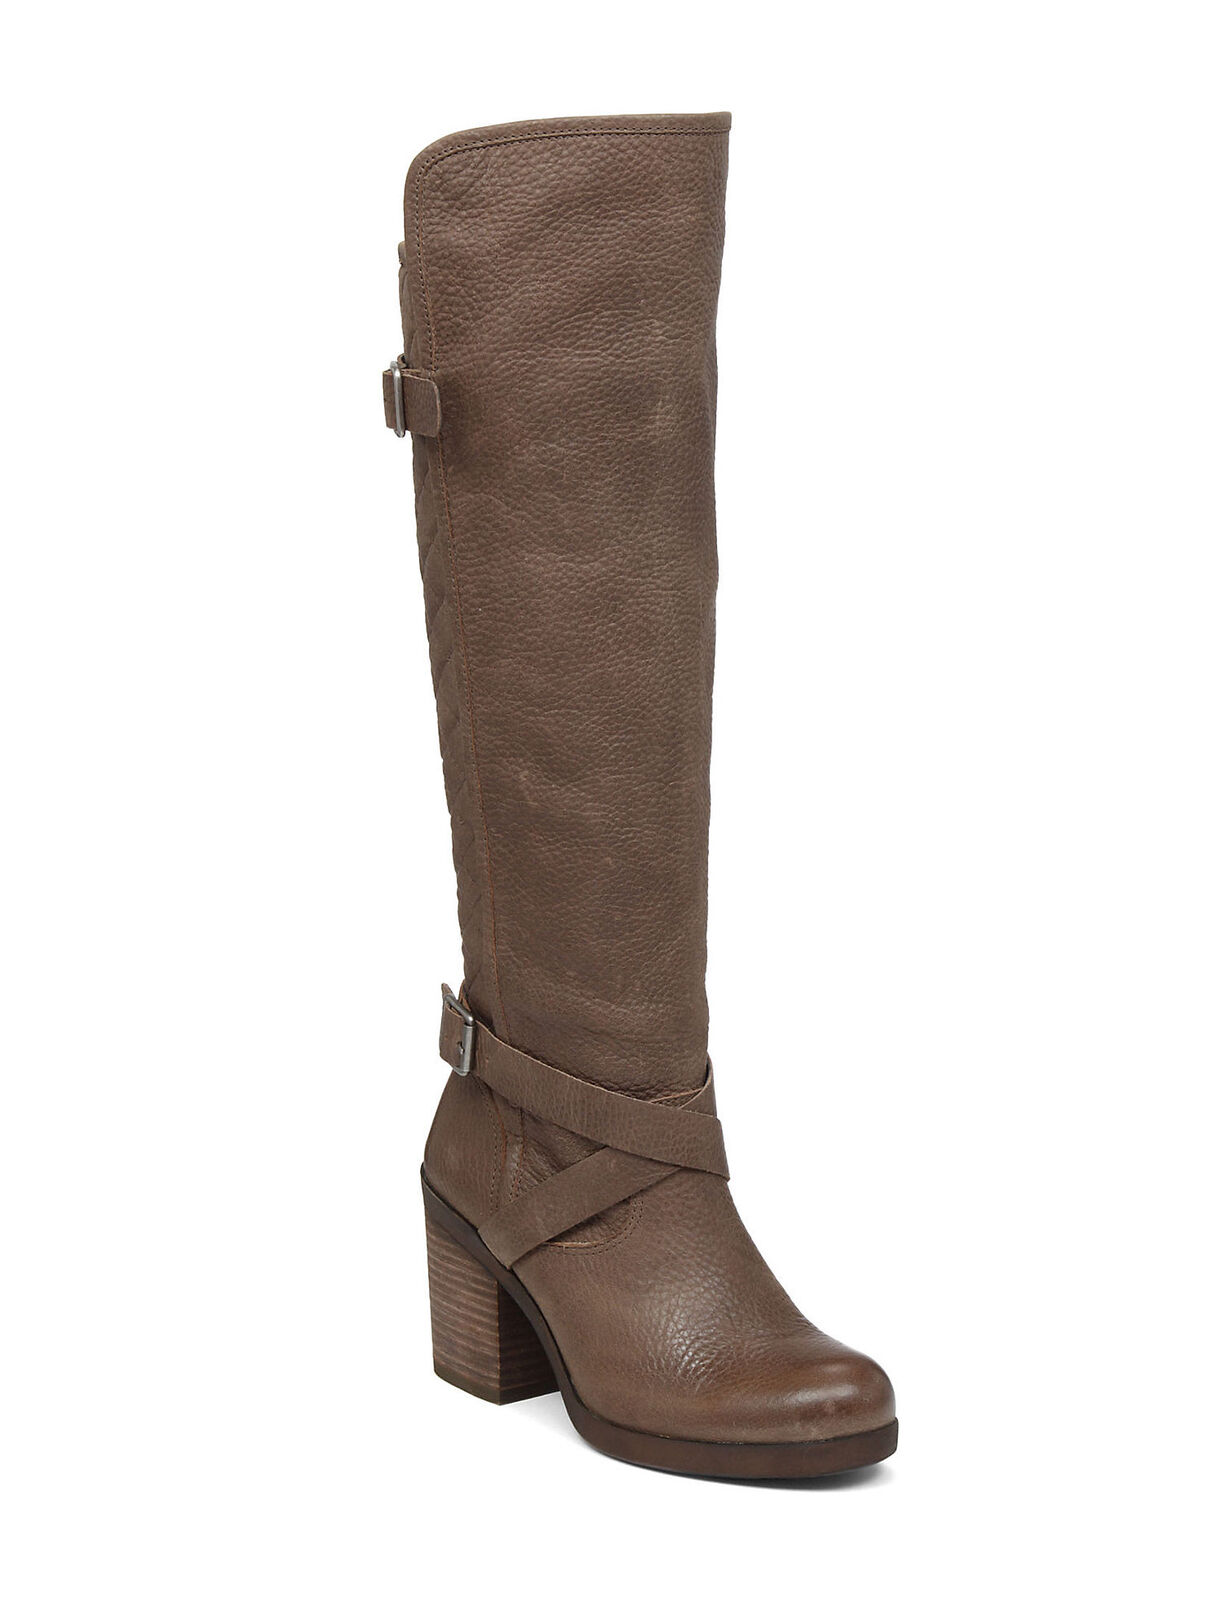 Lucky Brand Oryan Tall Boot size 6.5 NEW leather MSRP: $209